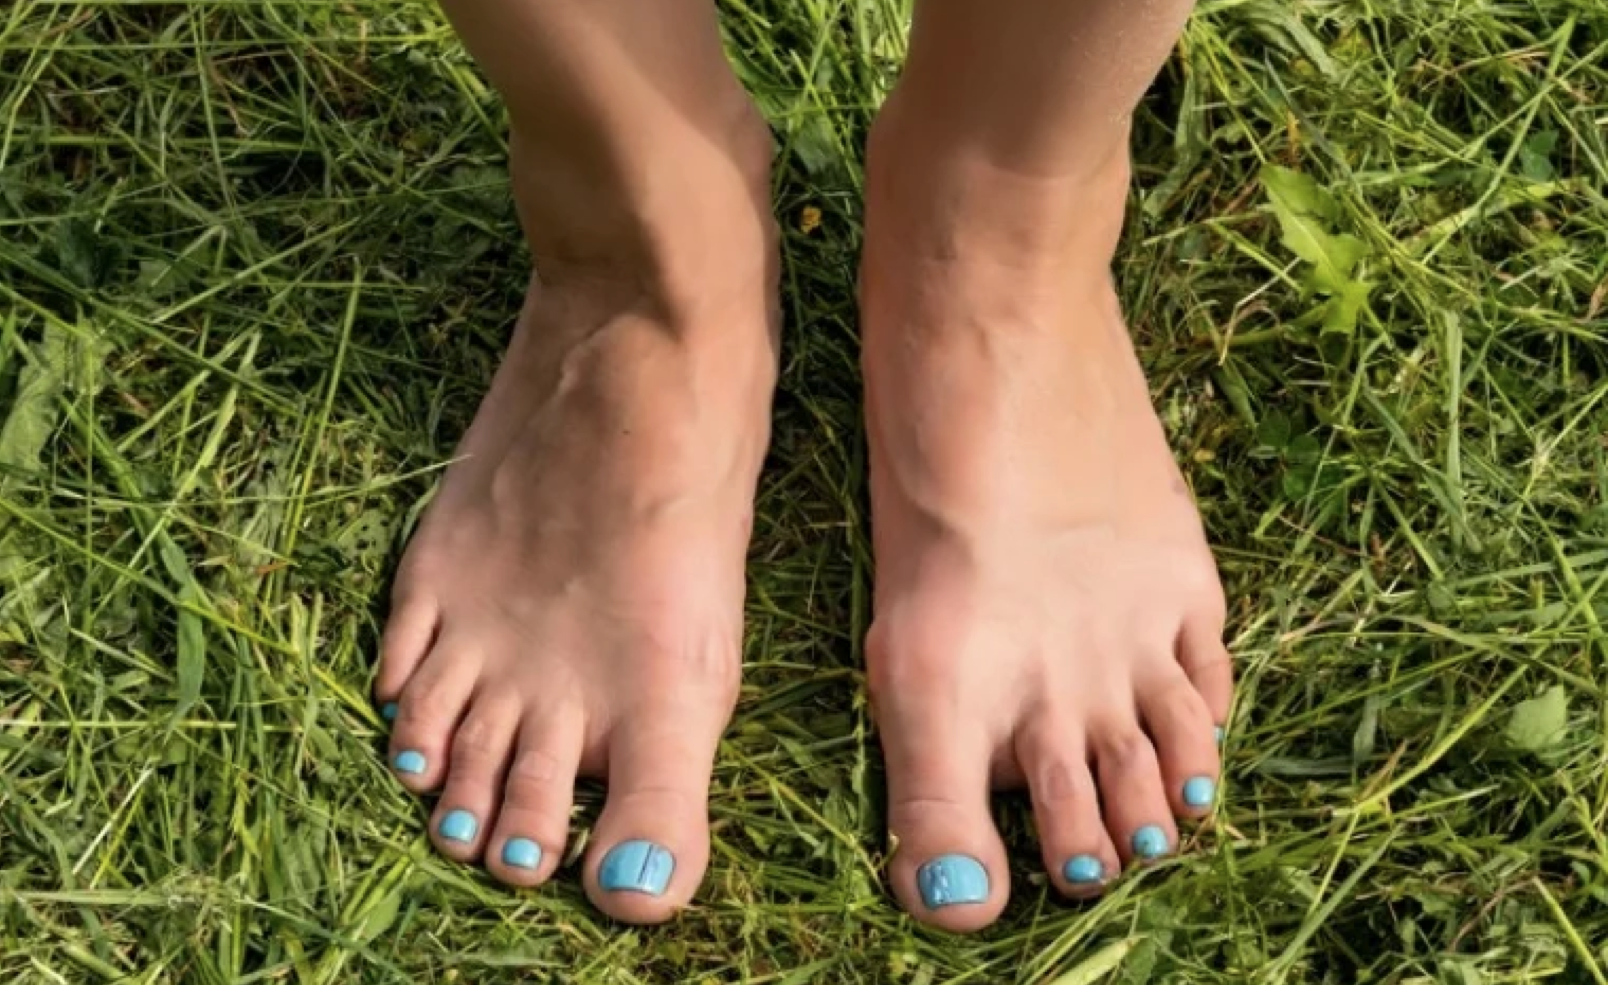 Earthing walking barefoot on the ground